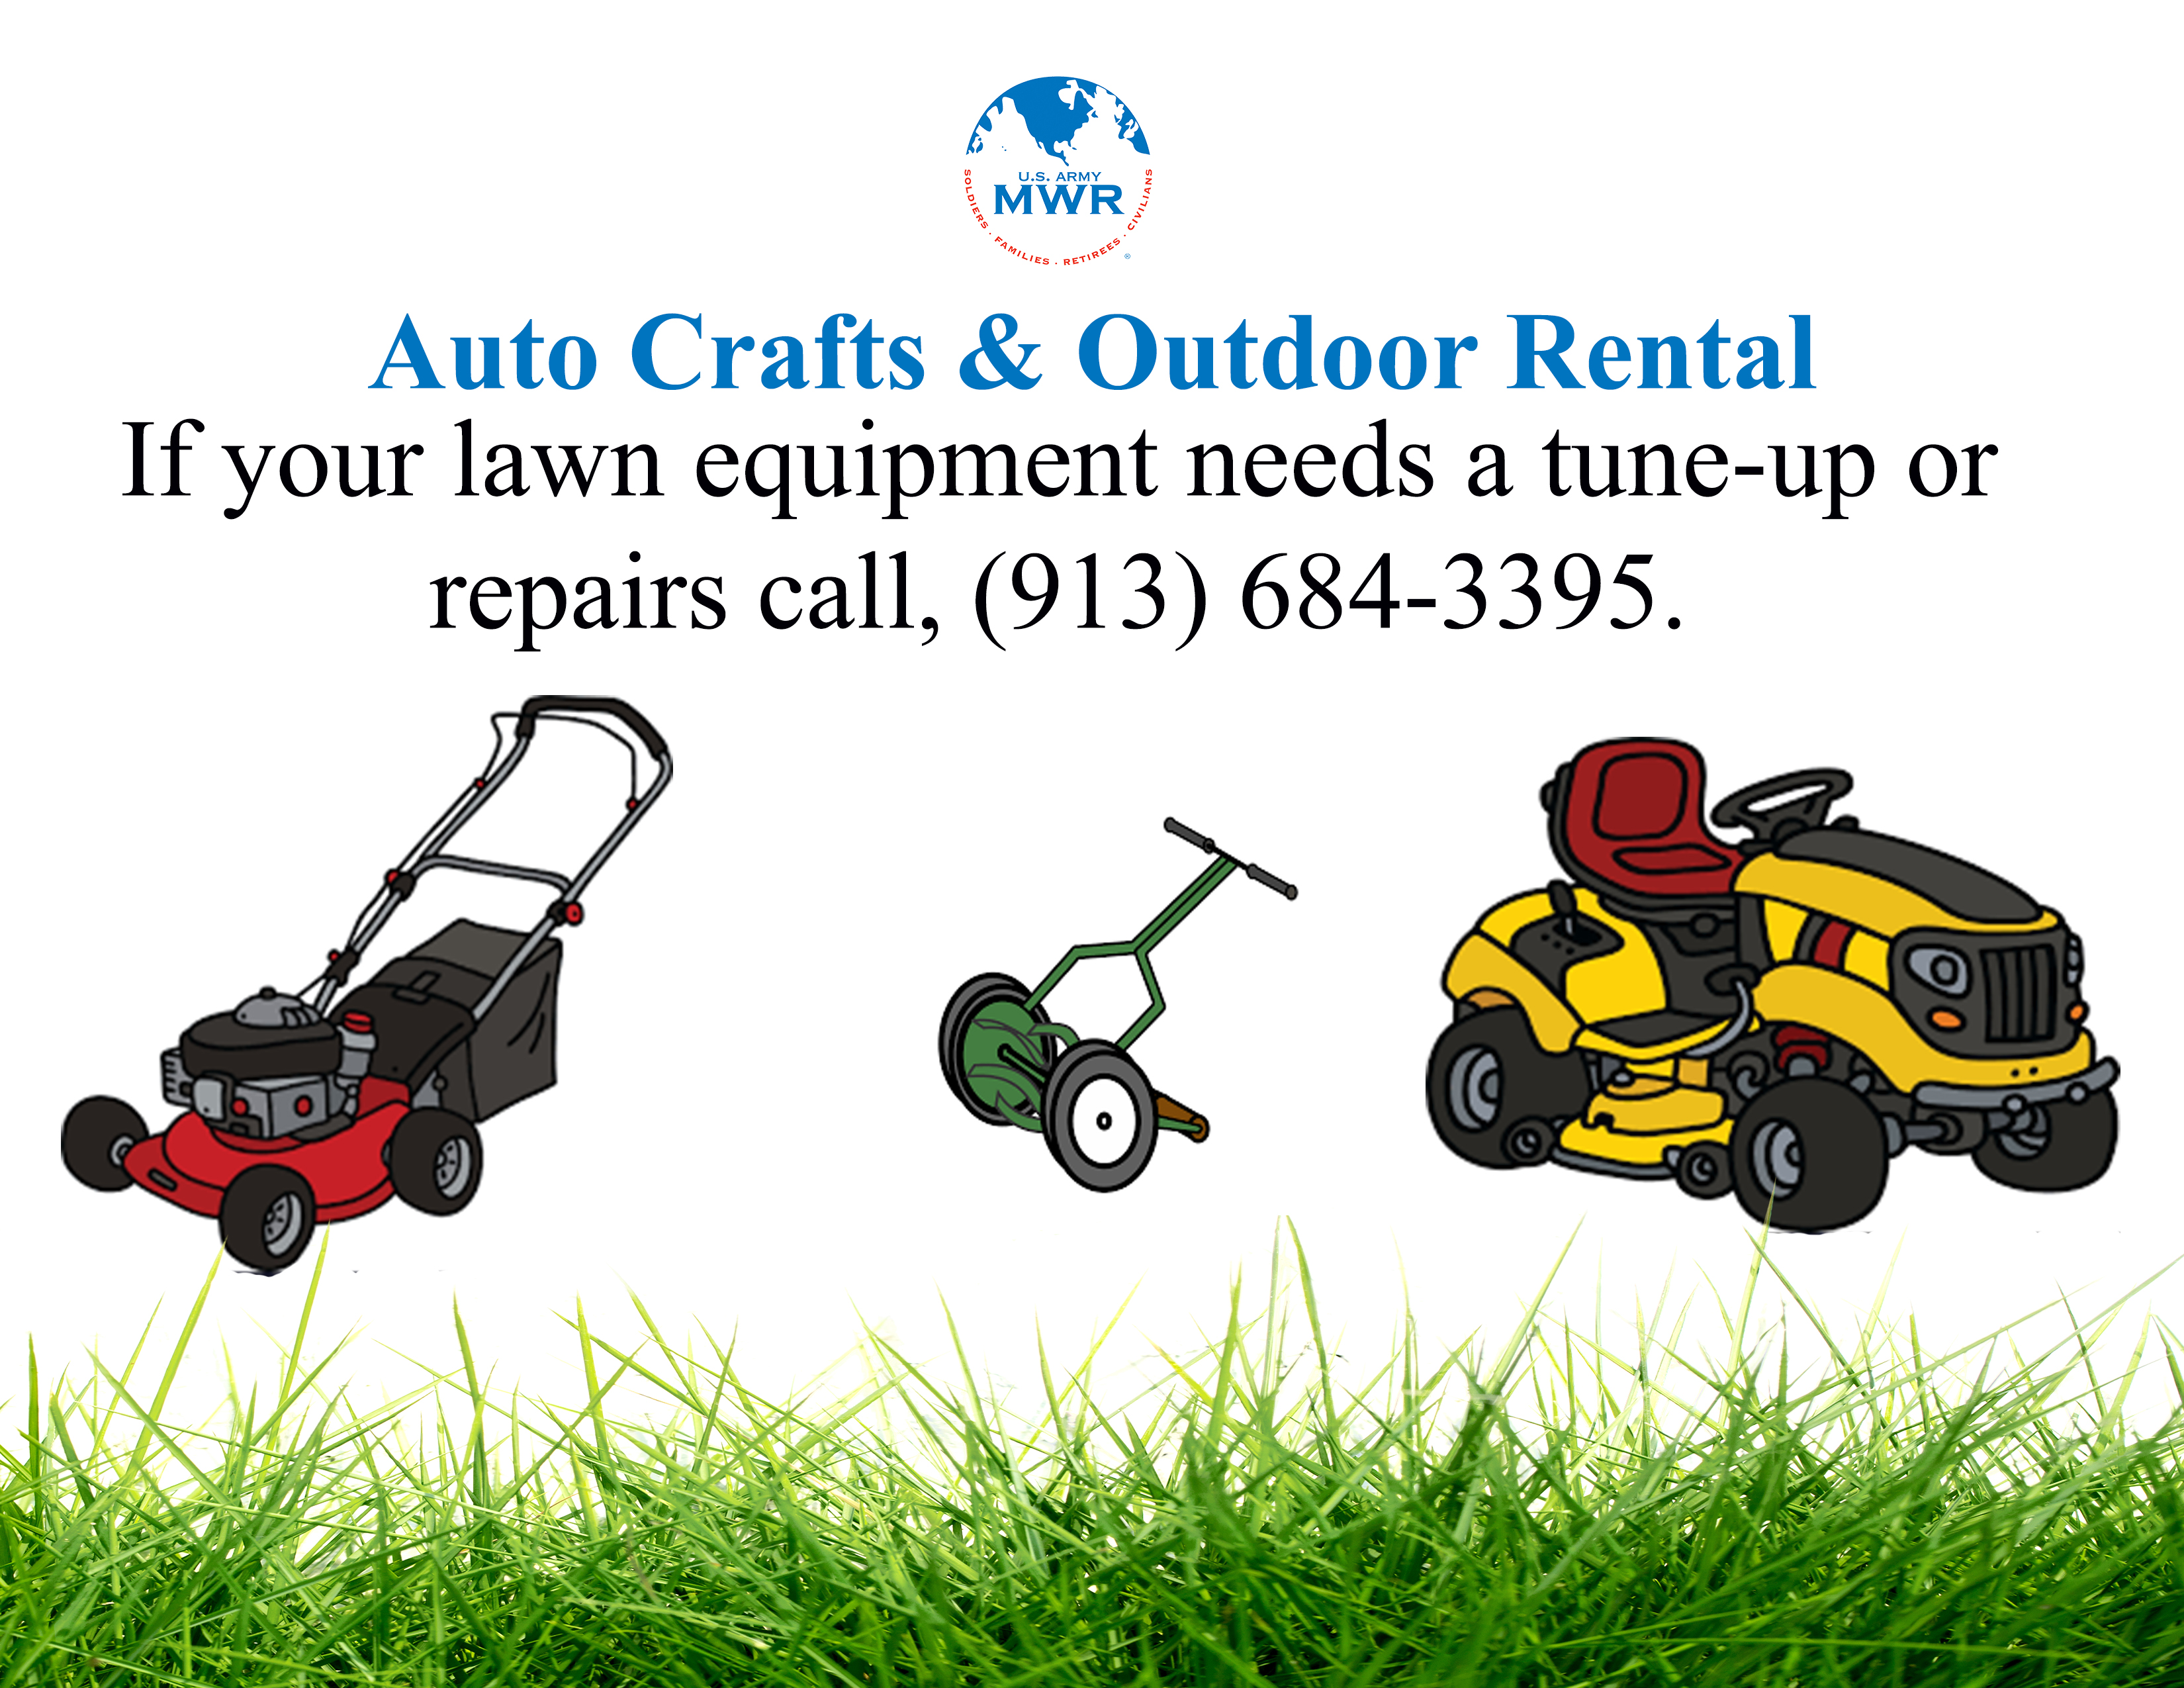 Auto Crafts and Outdoor Rental Lawn Equipment.jpg